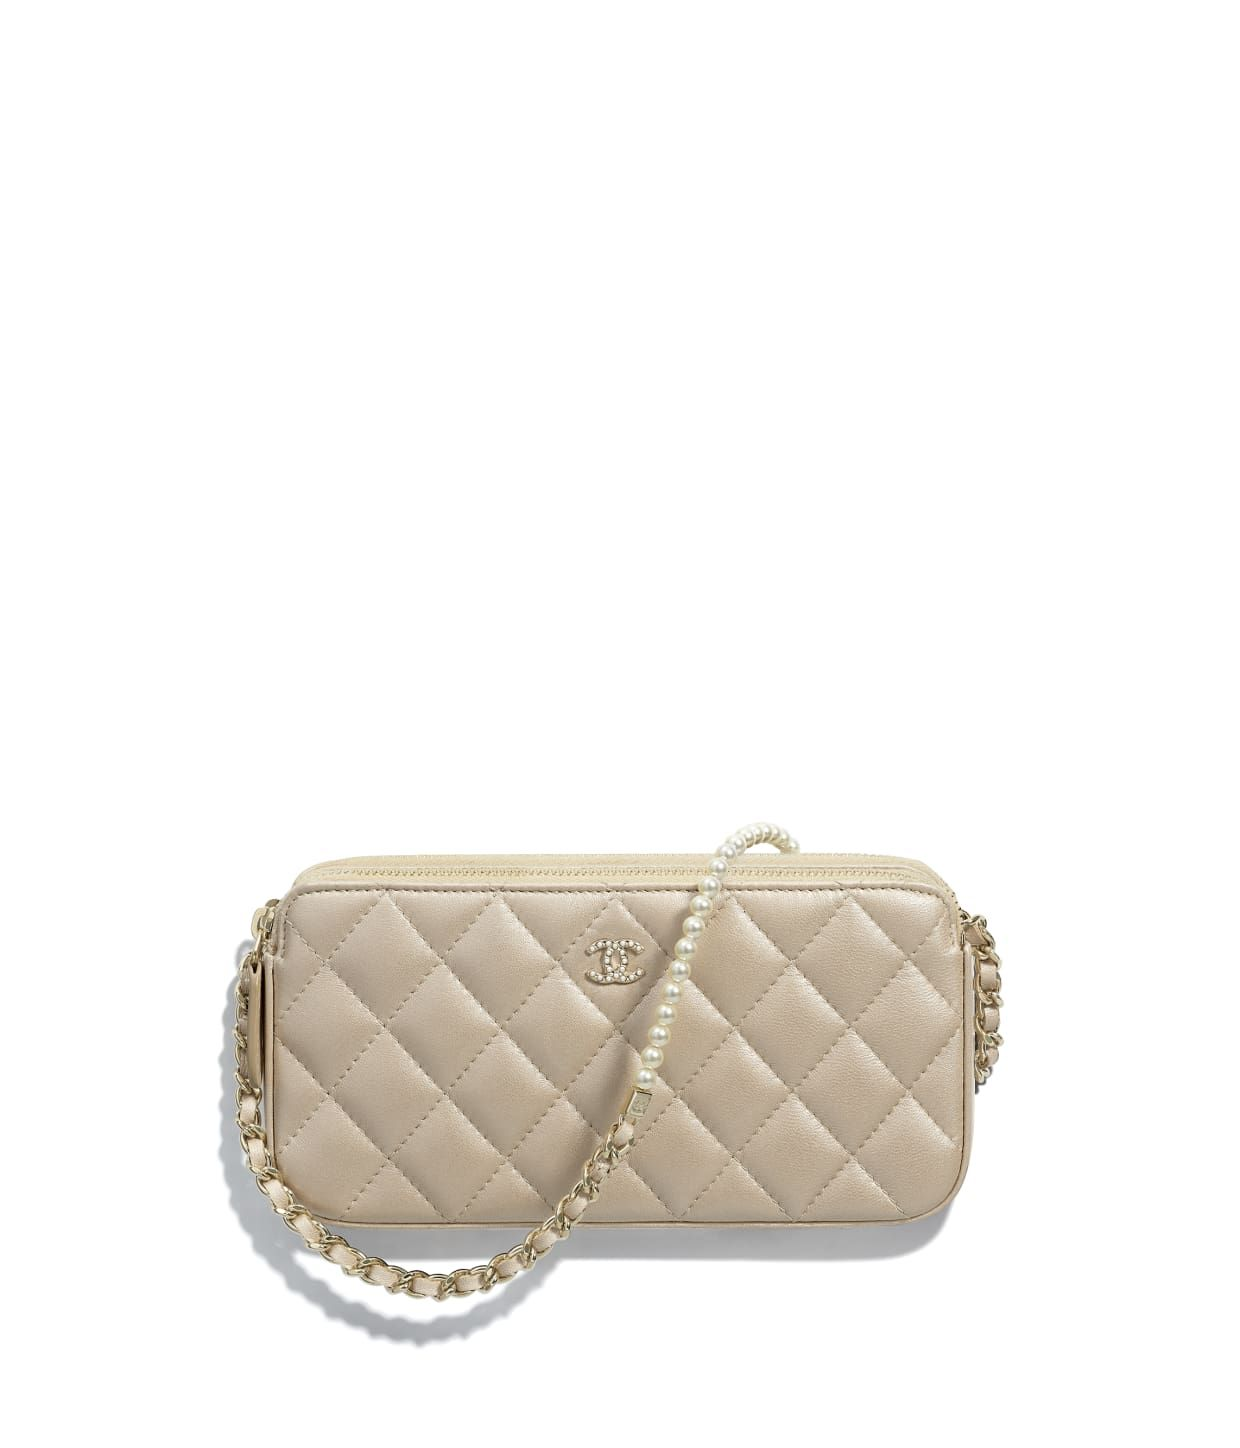 1ea2e451ca7d Discover the CHANEL Iridescent Lambskin & Gold-Tone Metal Beige Clutch with  Chain, and explore the artistry and craftsmanship of the House of CHANEL.